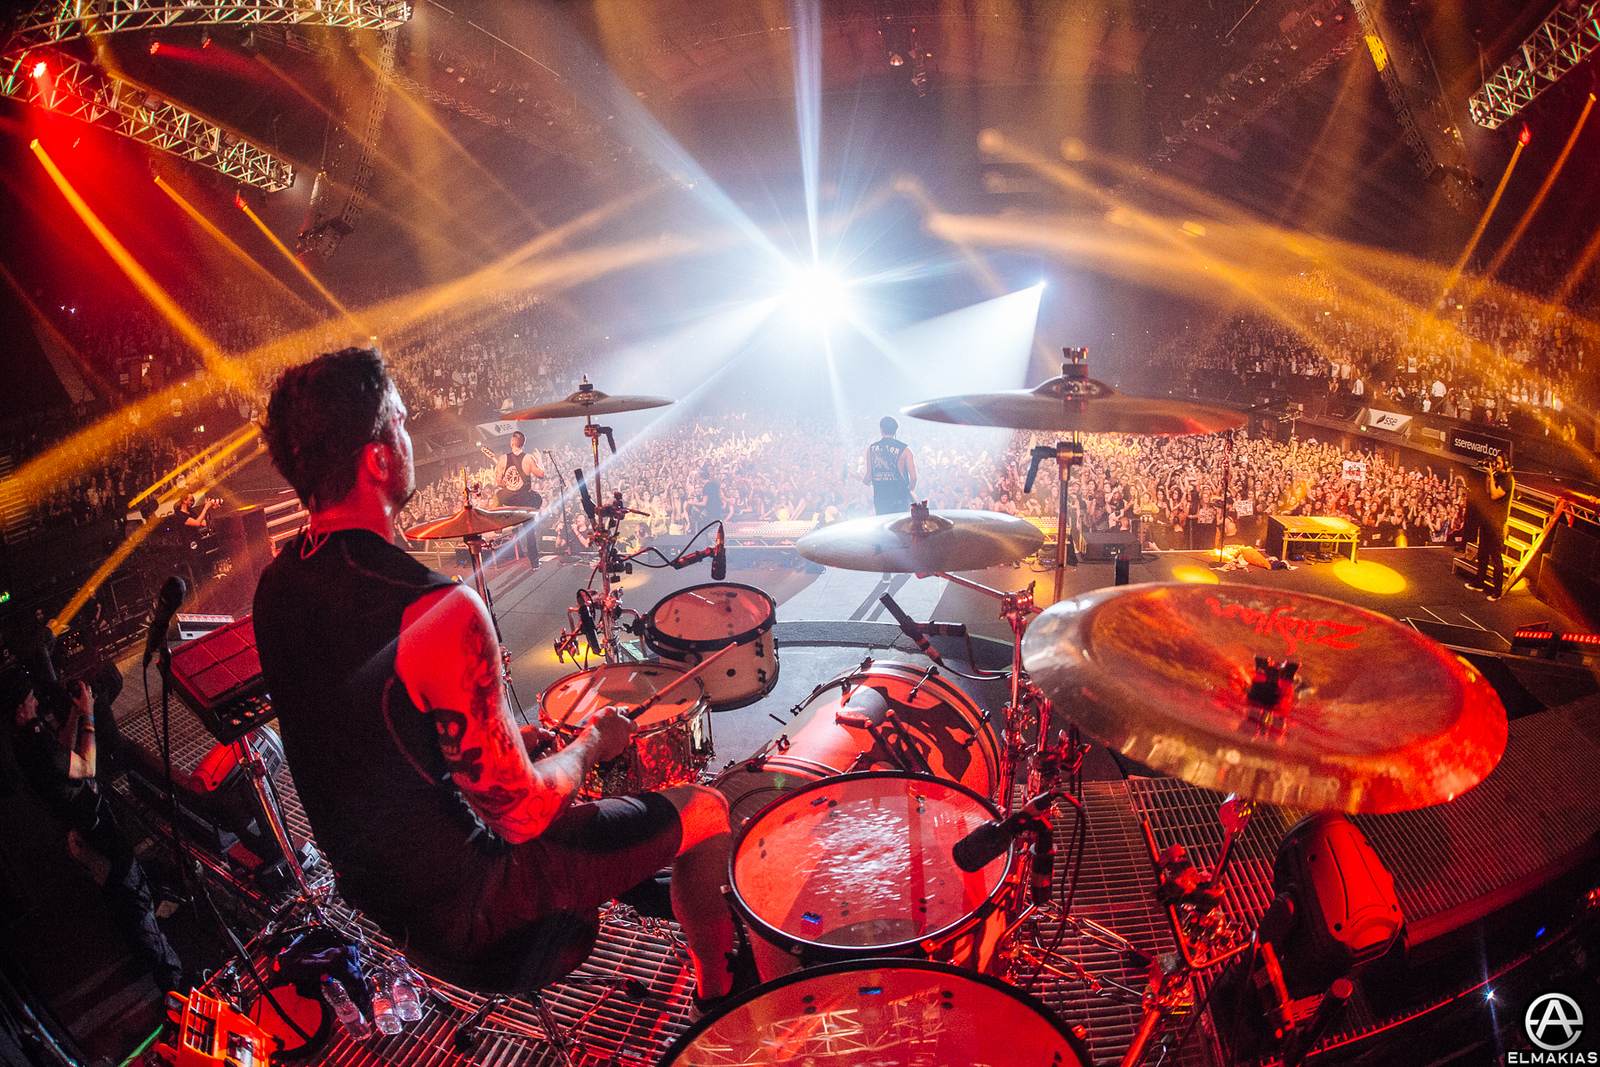 Rian's view